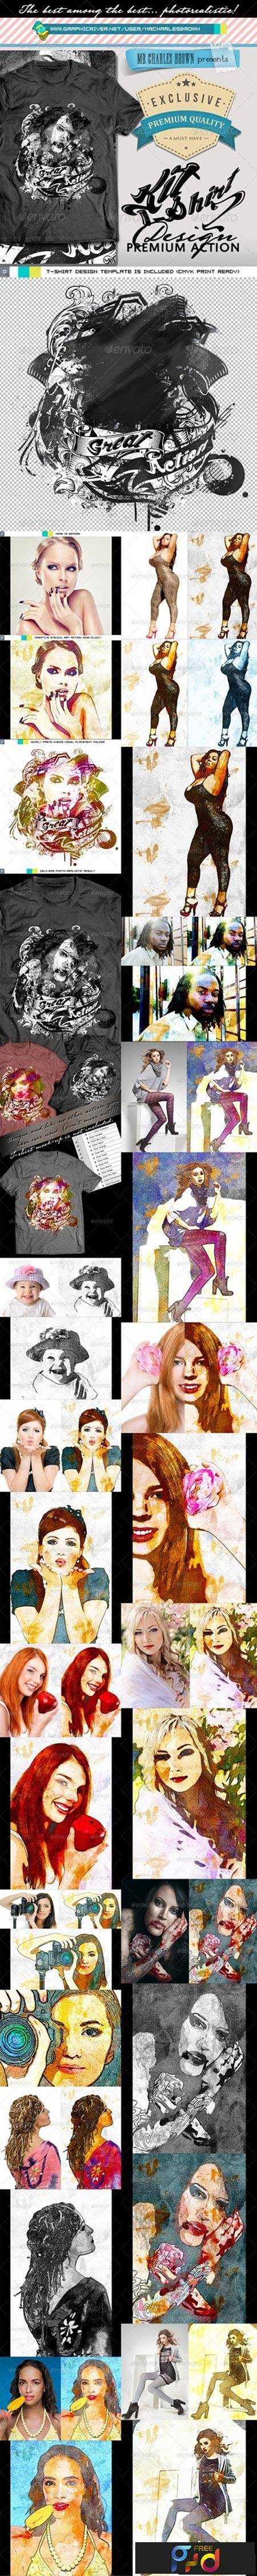 FreePsdVn.com_1702125_PHOTOSHOP_advance_t-shirt_design_kit_2_stencil_fine_art_6480106